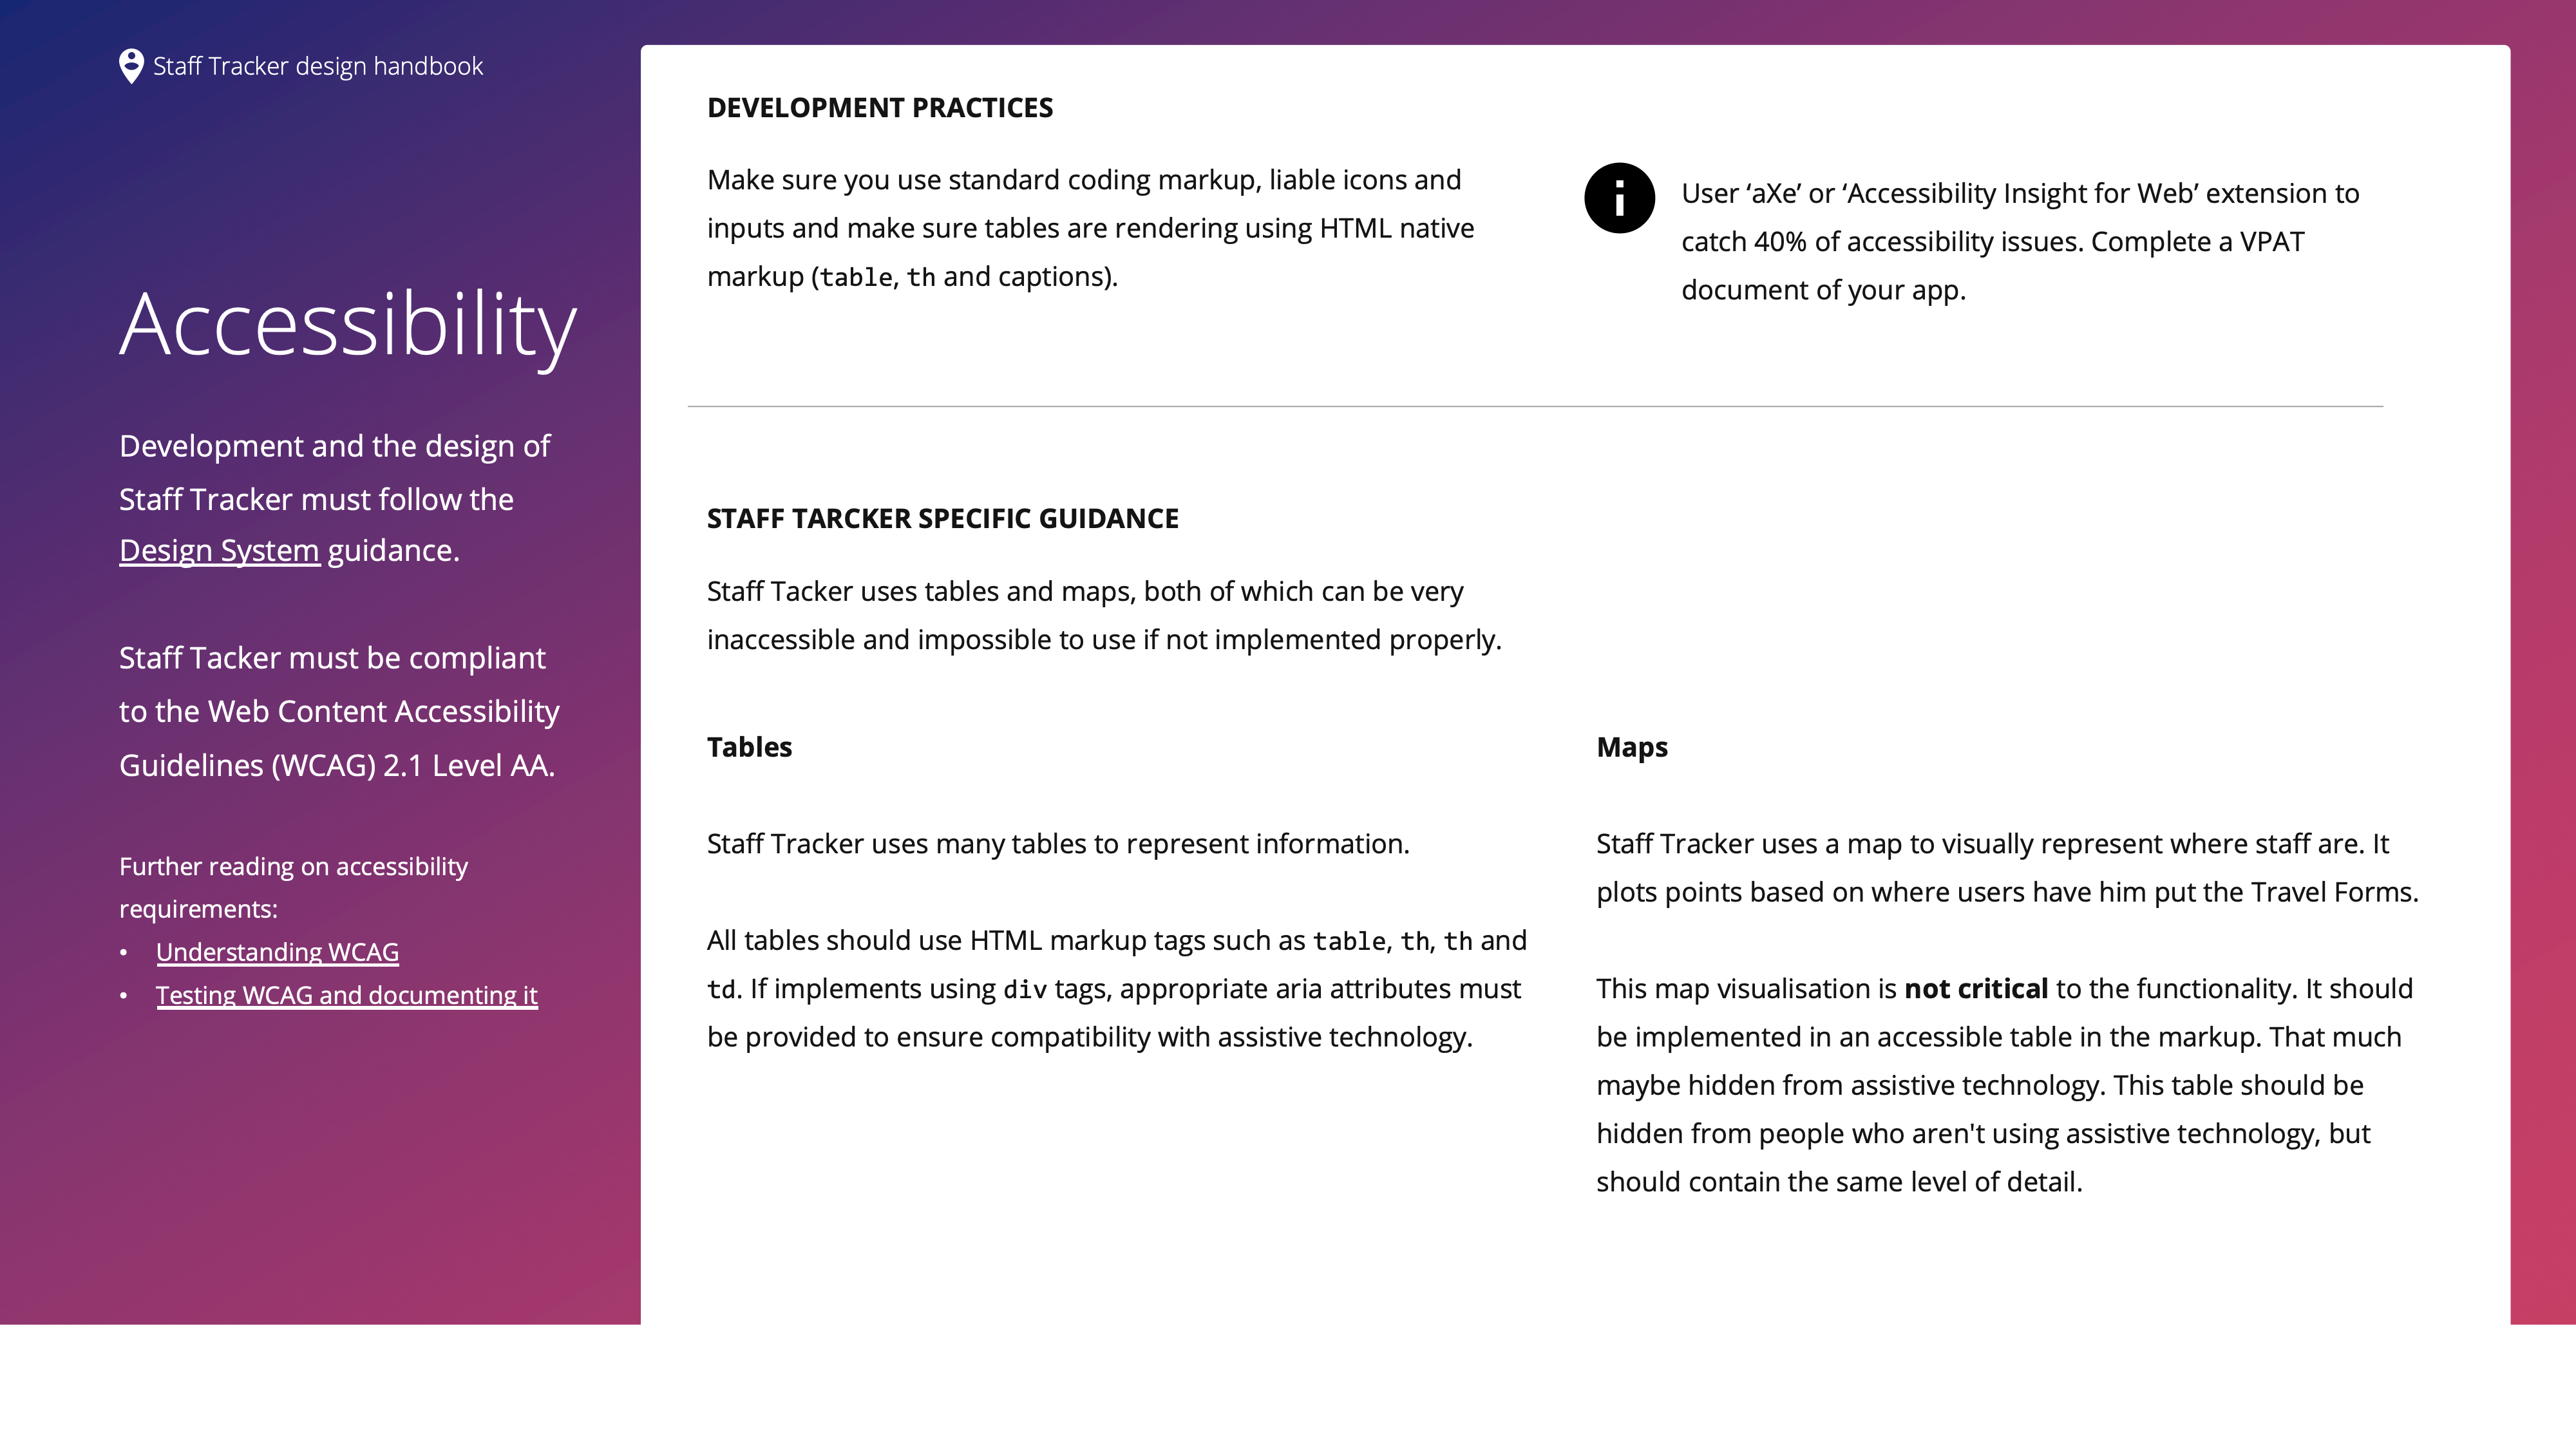 An image from Design Handbook, containing information about Accessibility considerations and Best Practices.